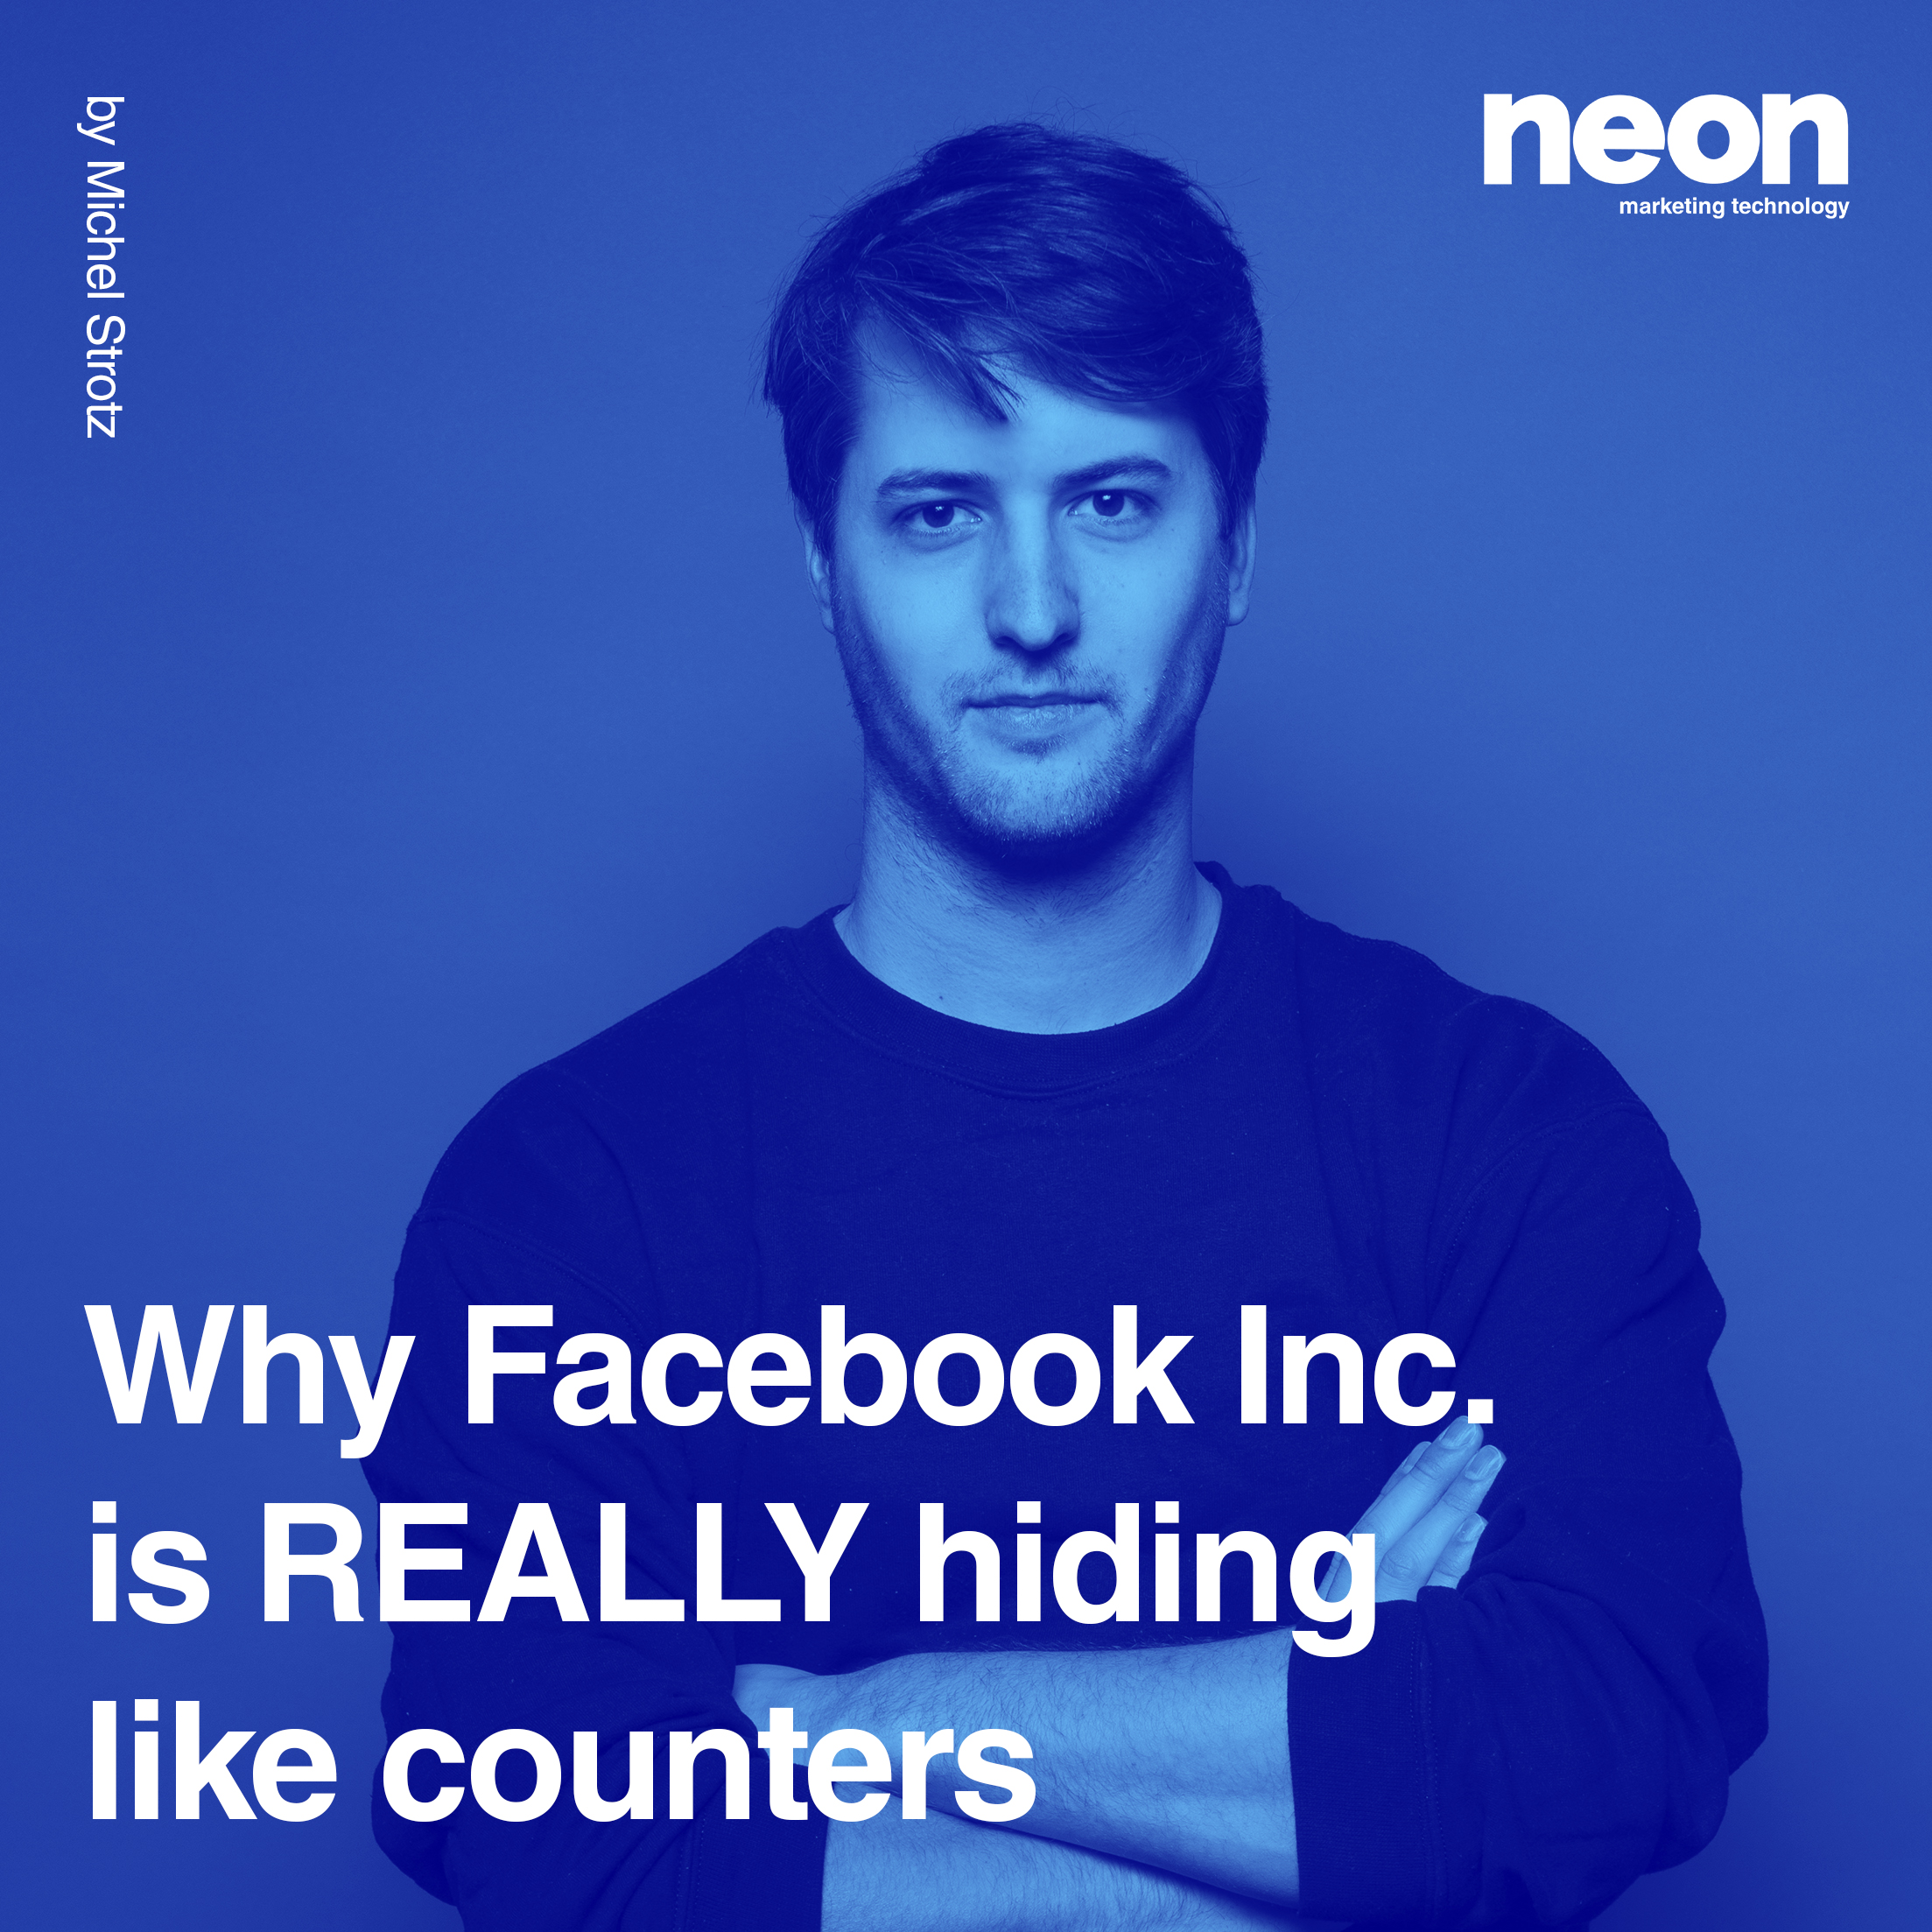 Why Facebook Inc. is really hiding like counters.